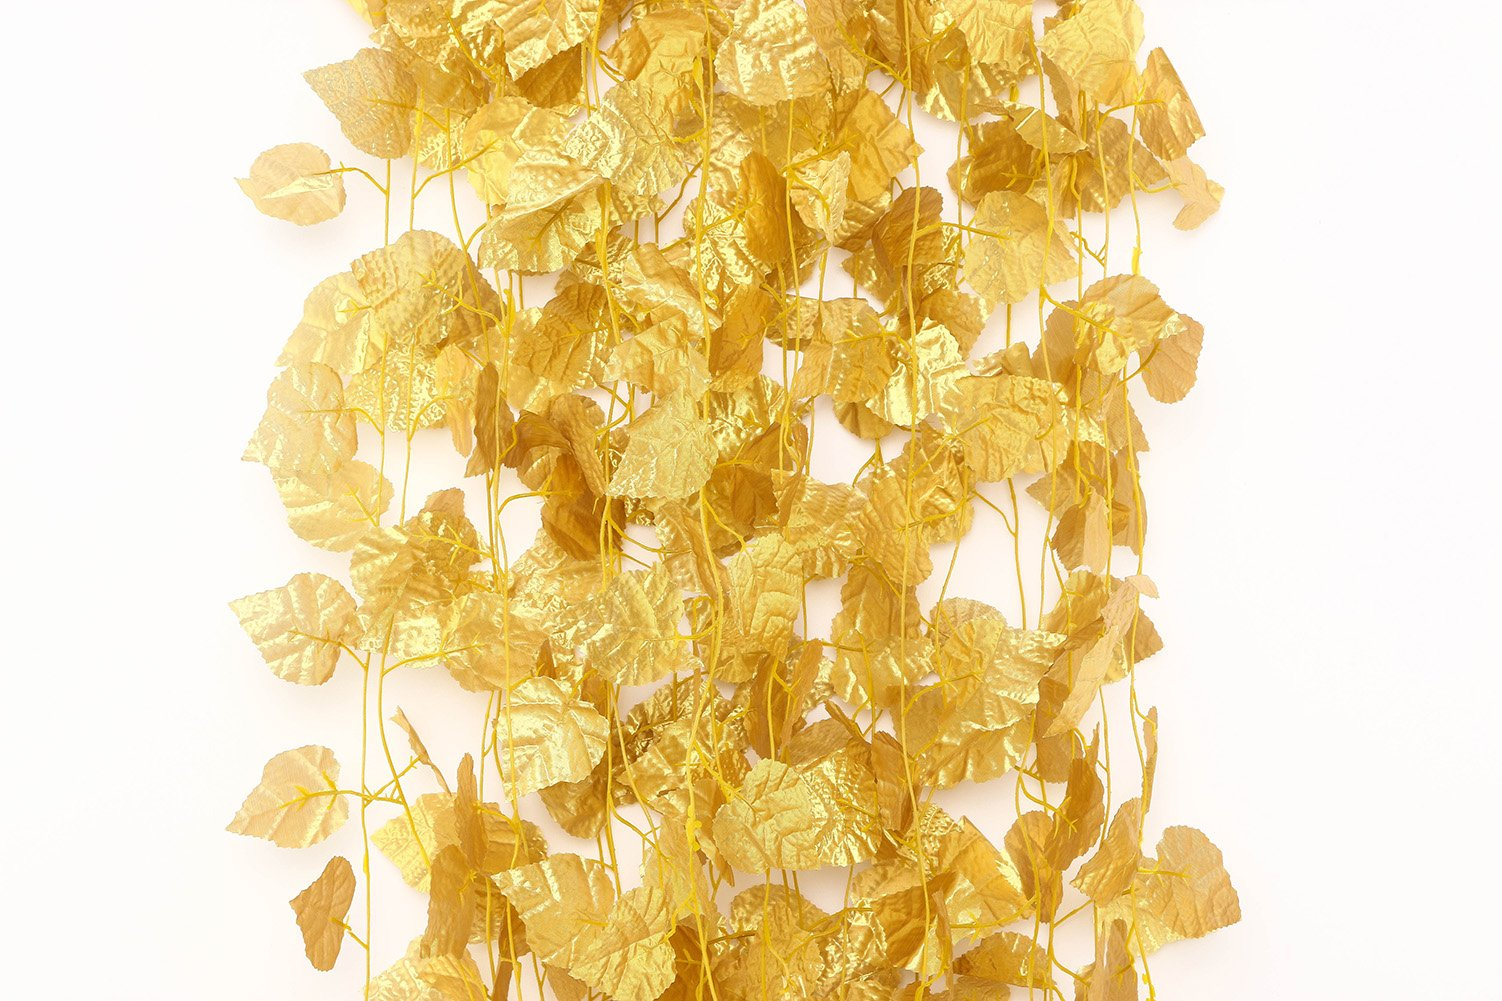 12-Pcs-Artificial-Golden-Grape-Leaves-Vine-Fake-Hanging-Garland-Plants-Greenery-Ivy-for-Wedding-Party-Garden-Outdoor-Christmas-Decoration-Each-79-Ft-Long